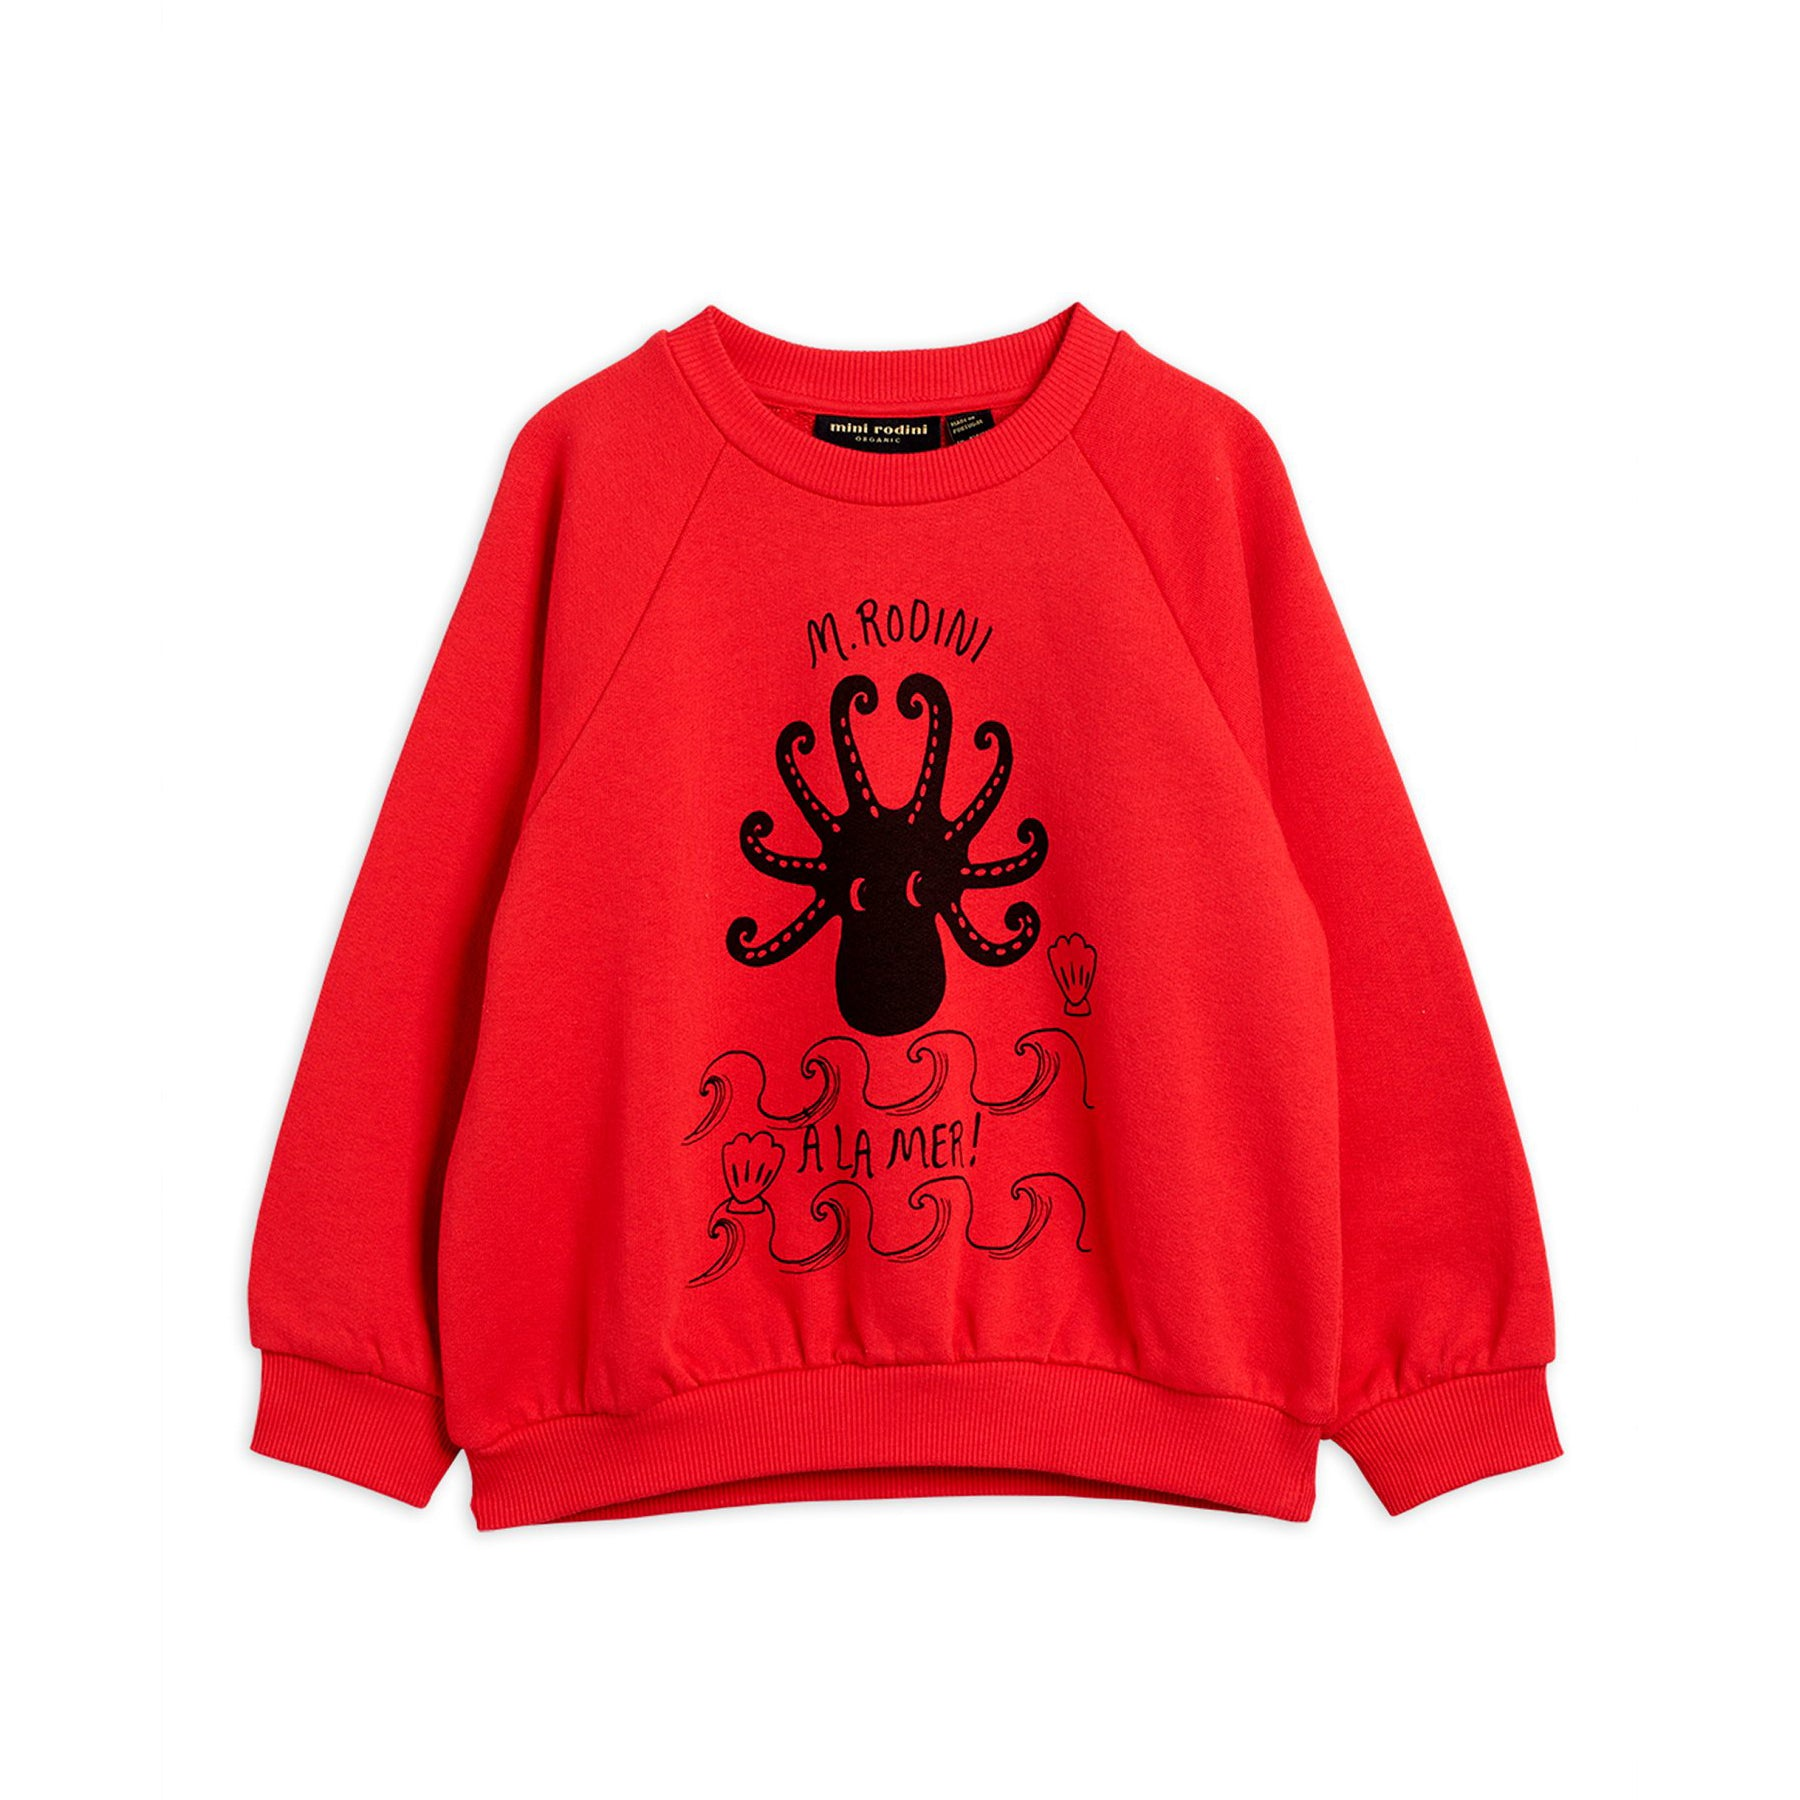 Mini Rodini octopus svetari, red